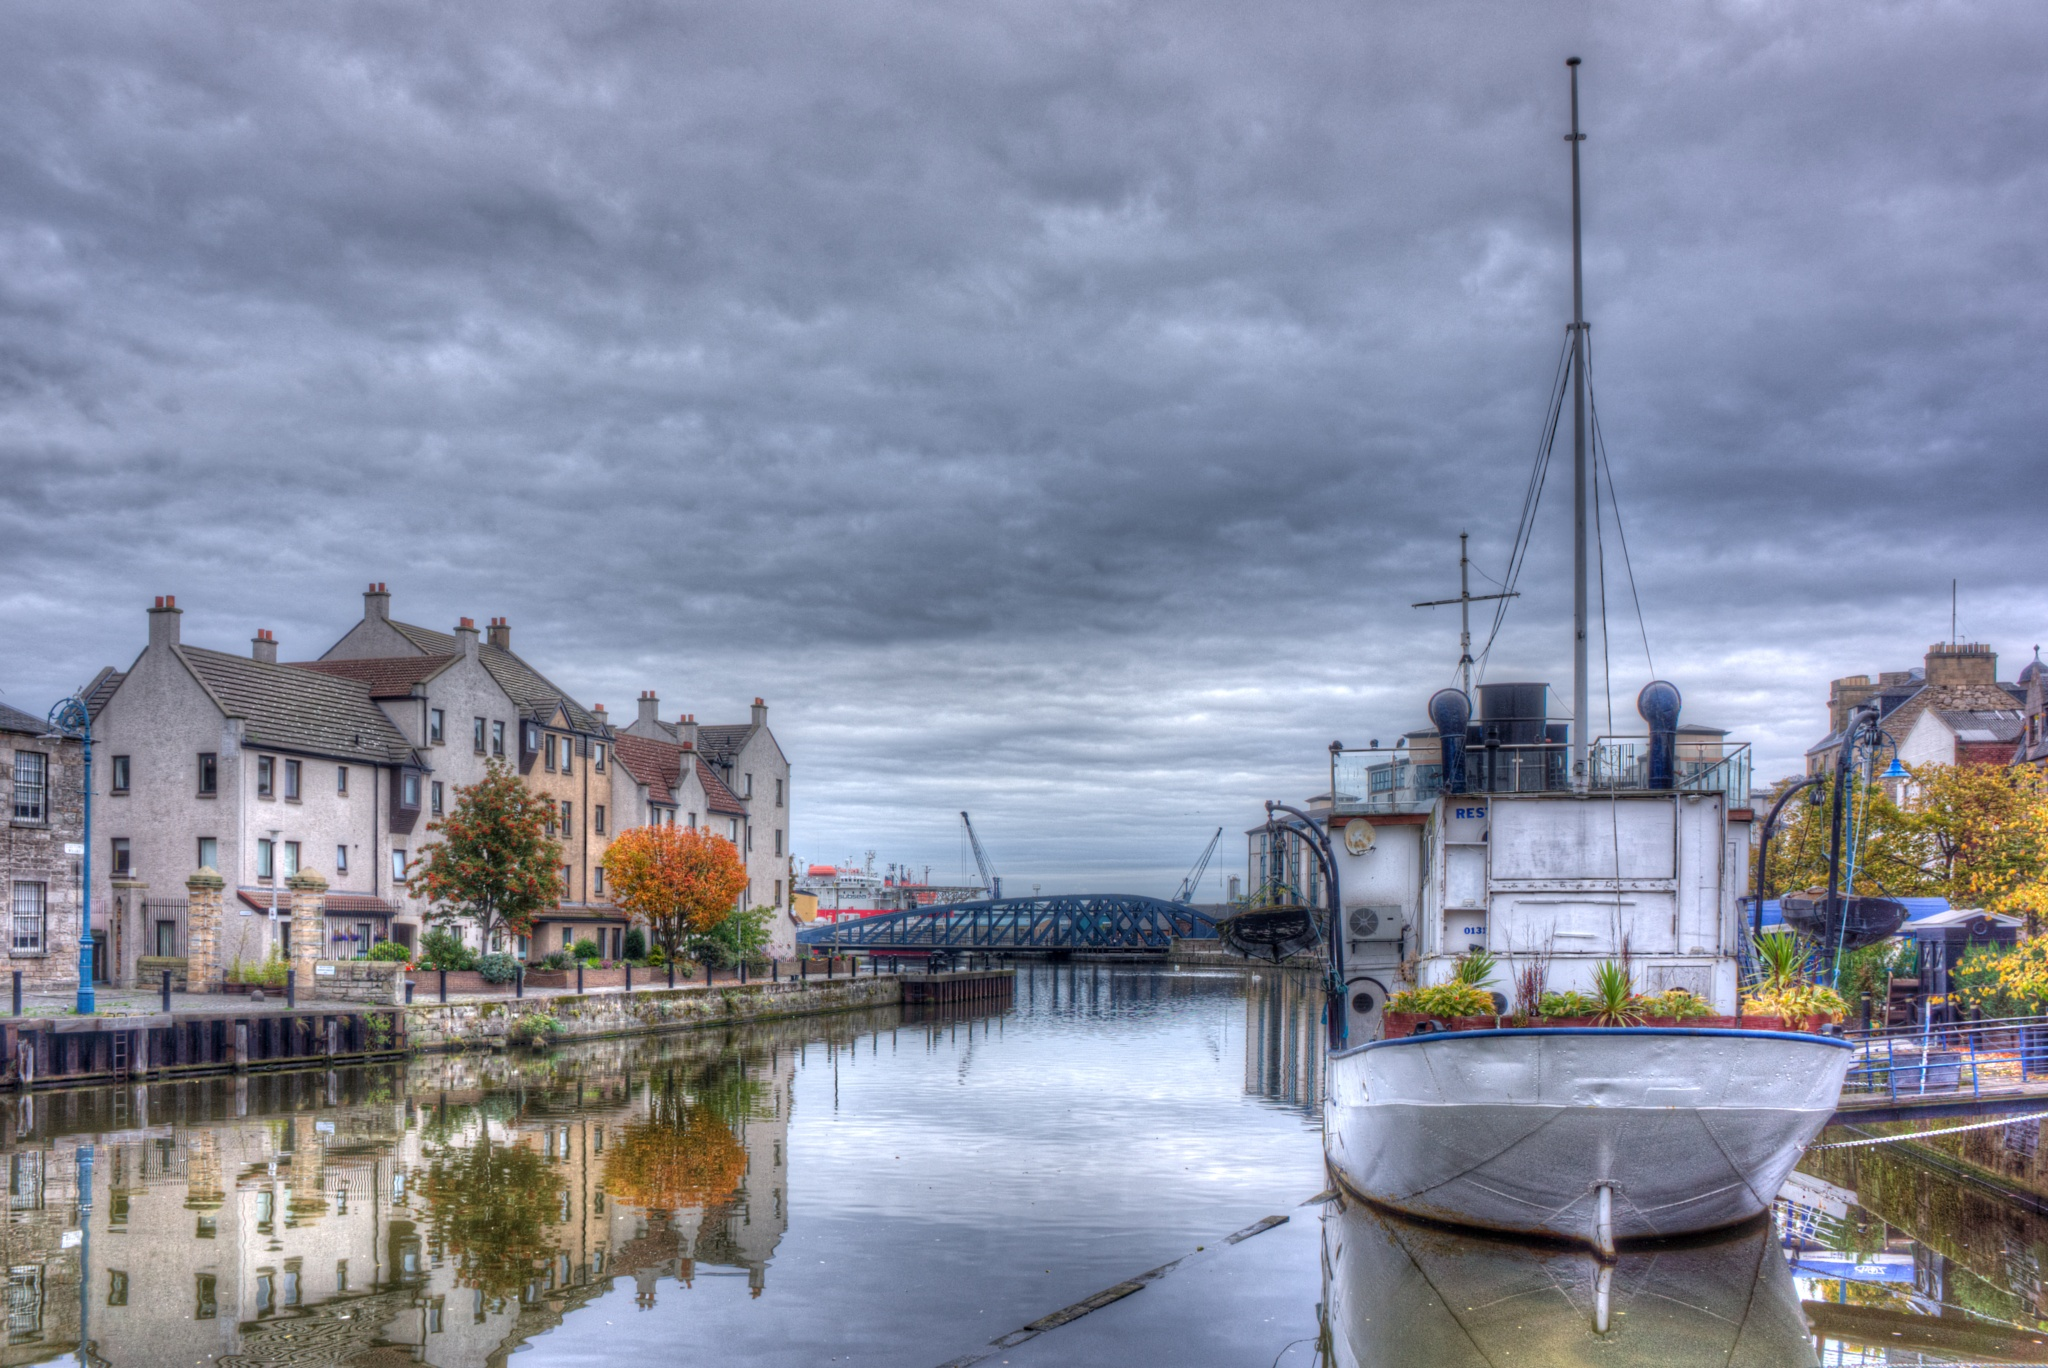 Autumn in Leith by lawson mcculloch